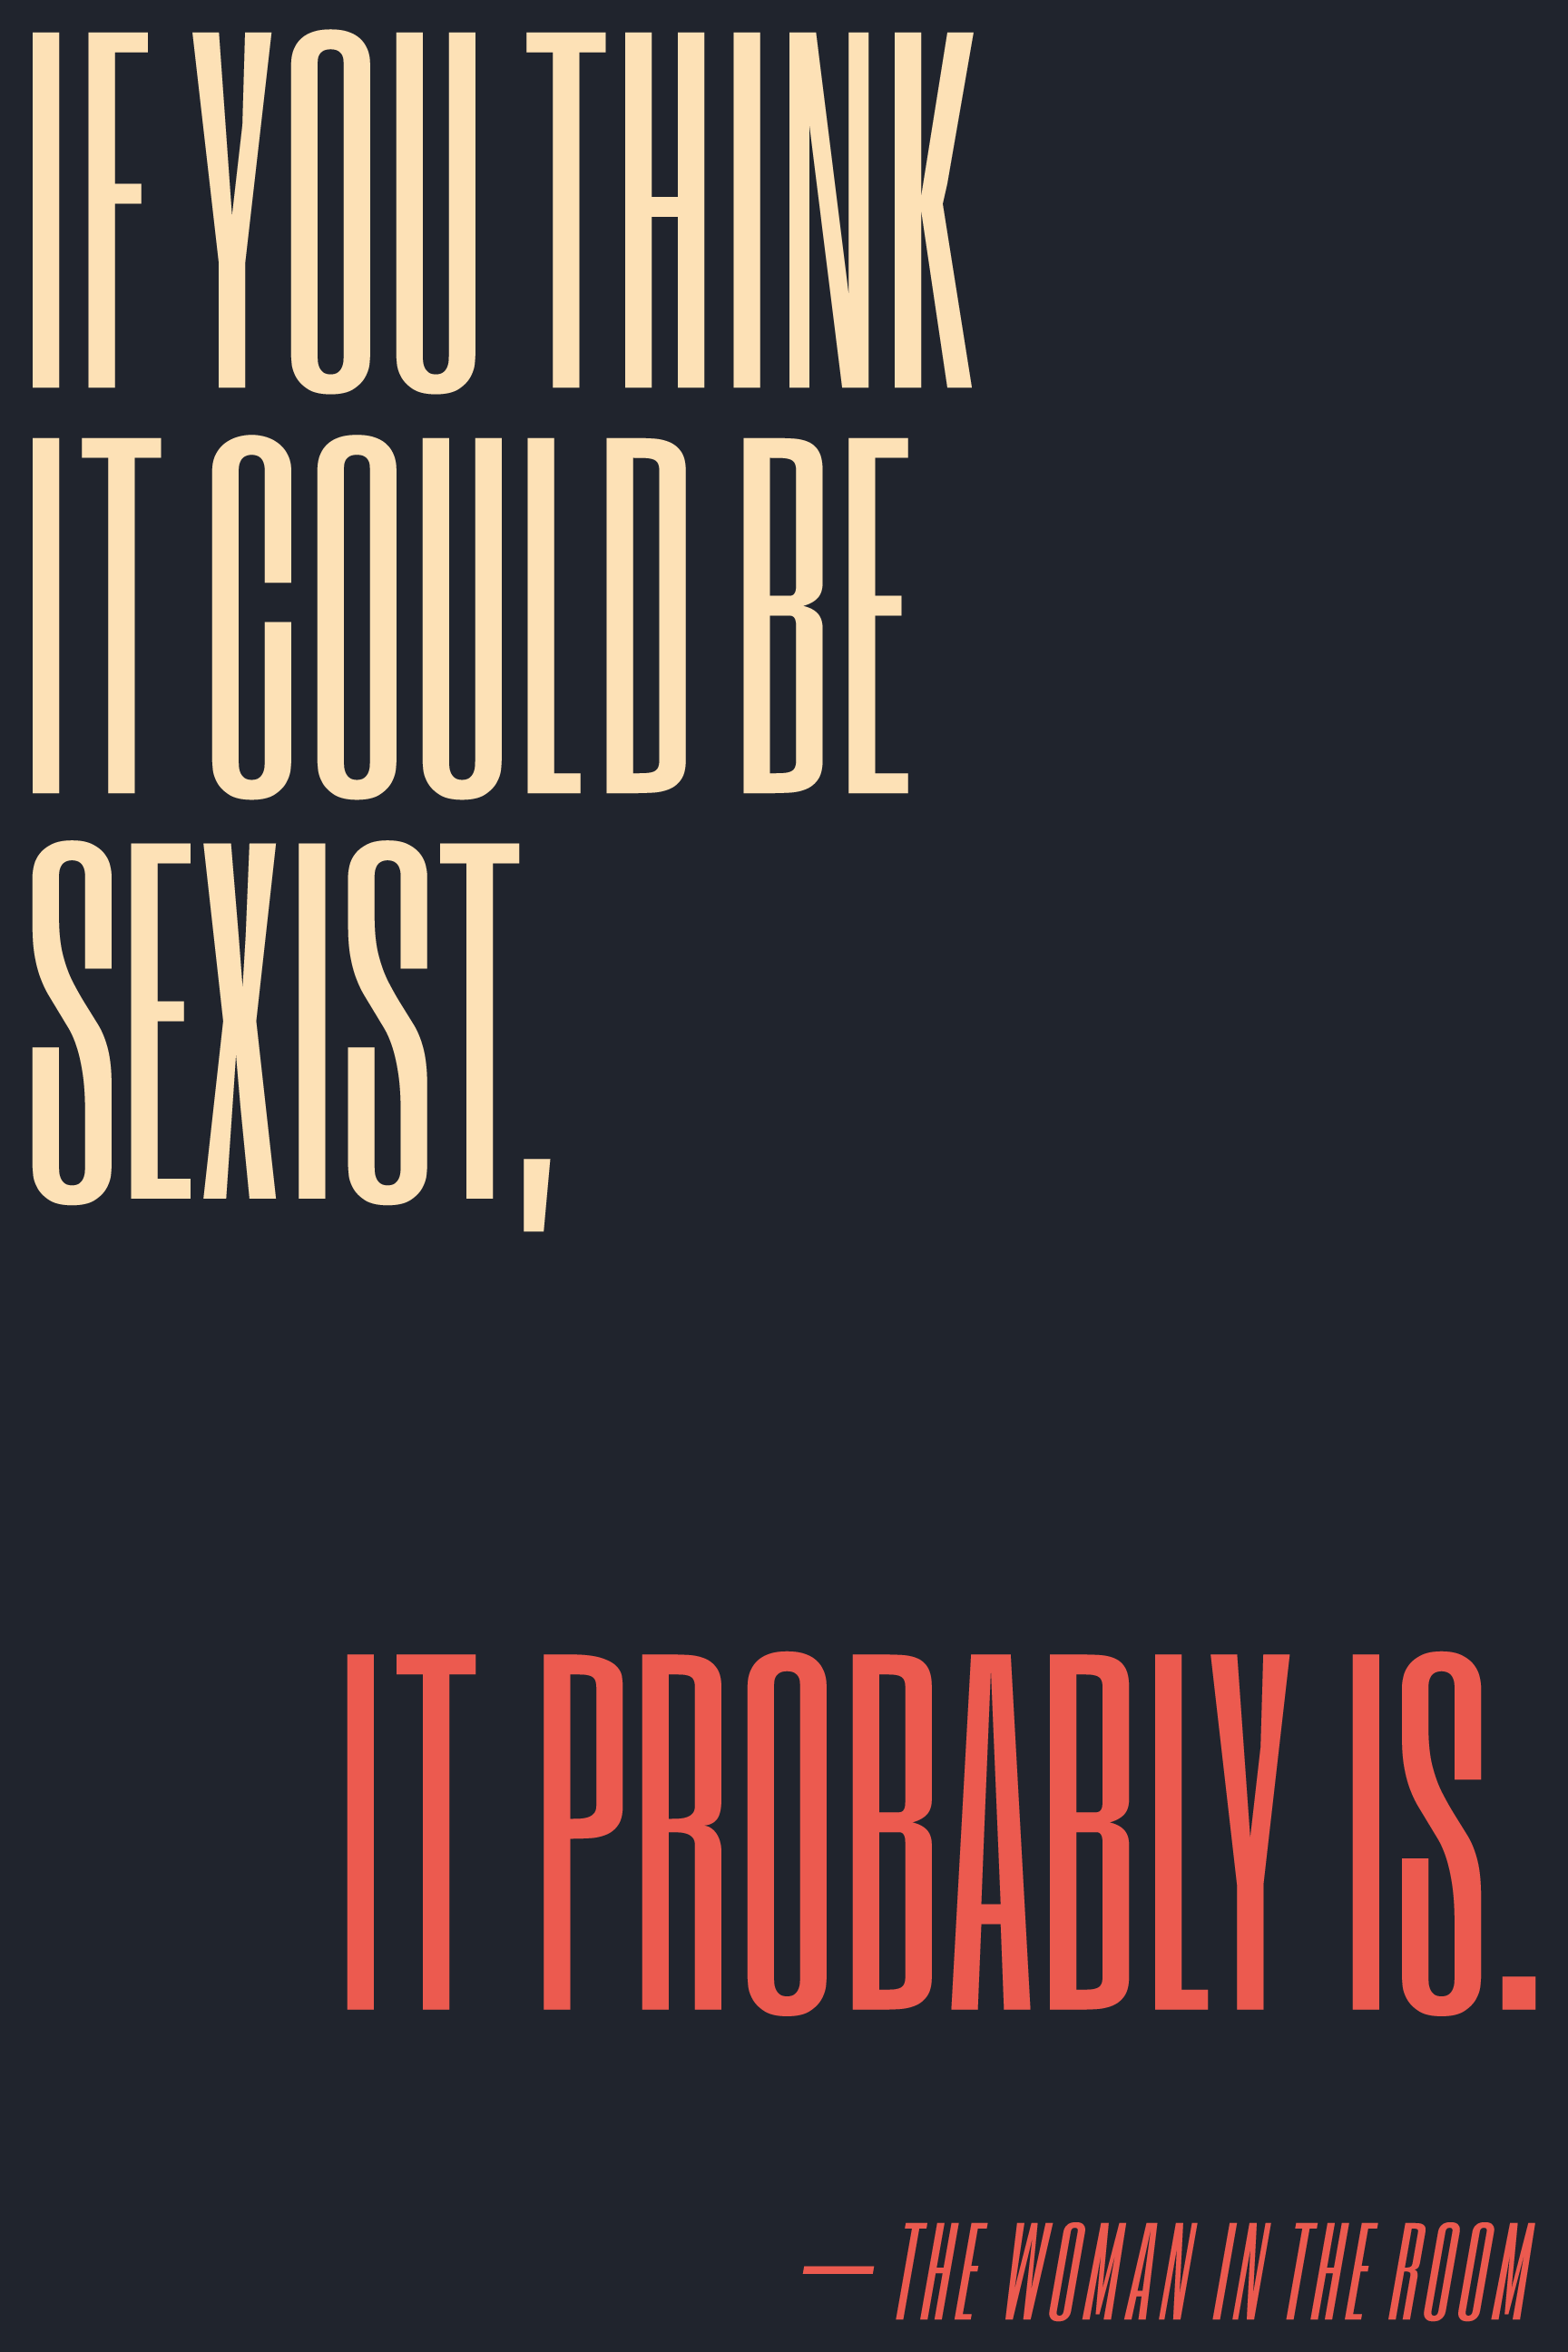 If you think it could be sexist, it probably is.